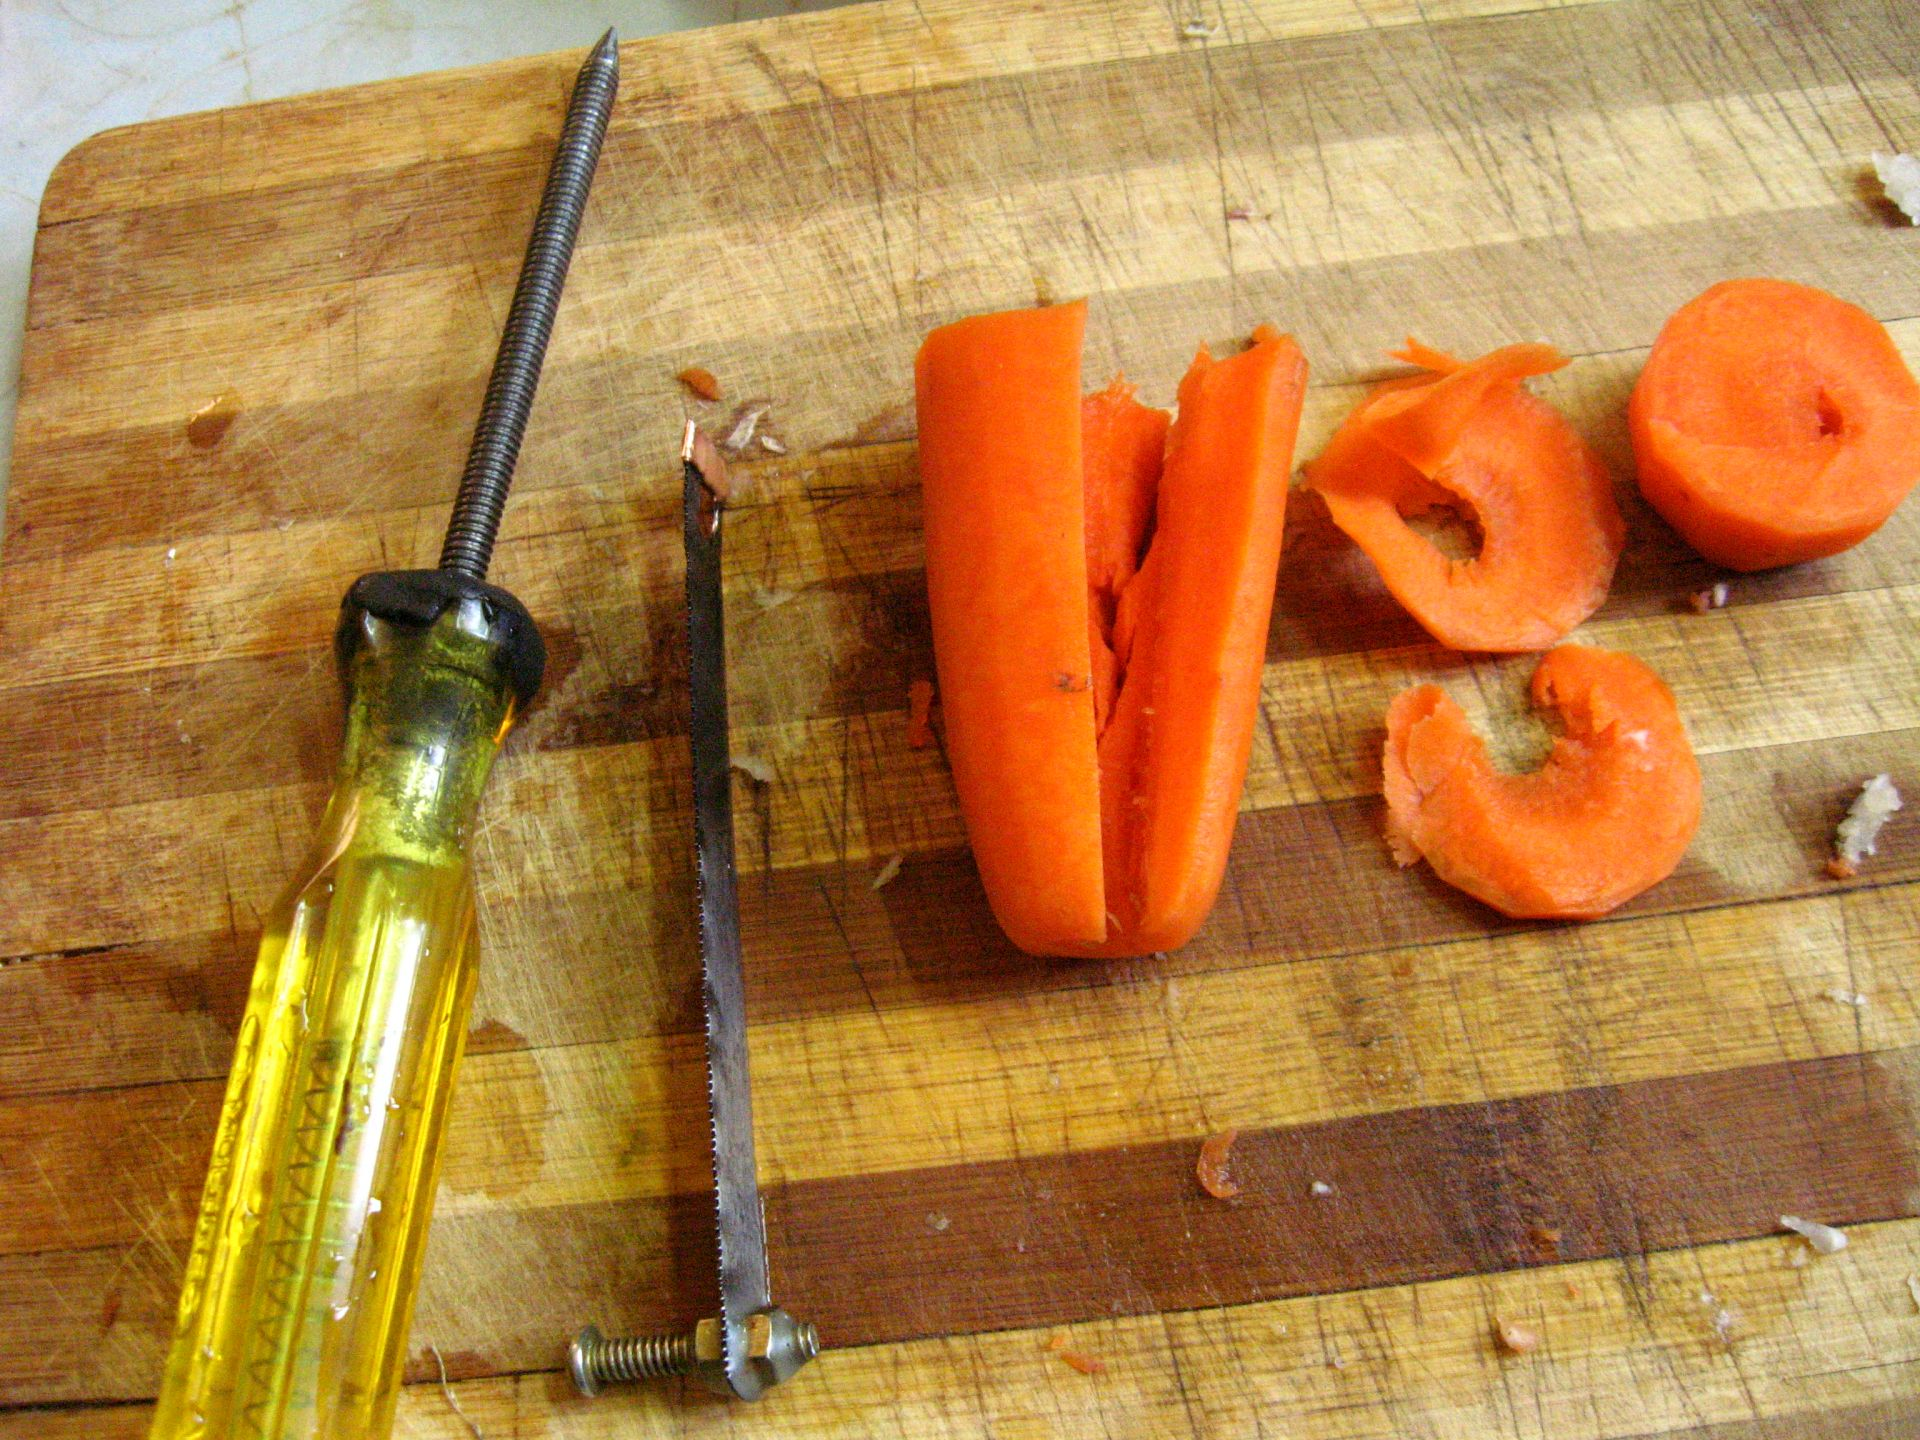 Picture of Vegetables Not Suitable for This Tool